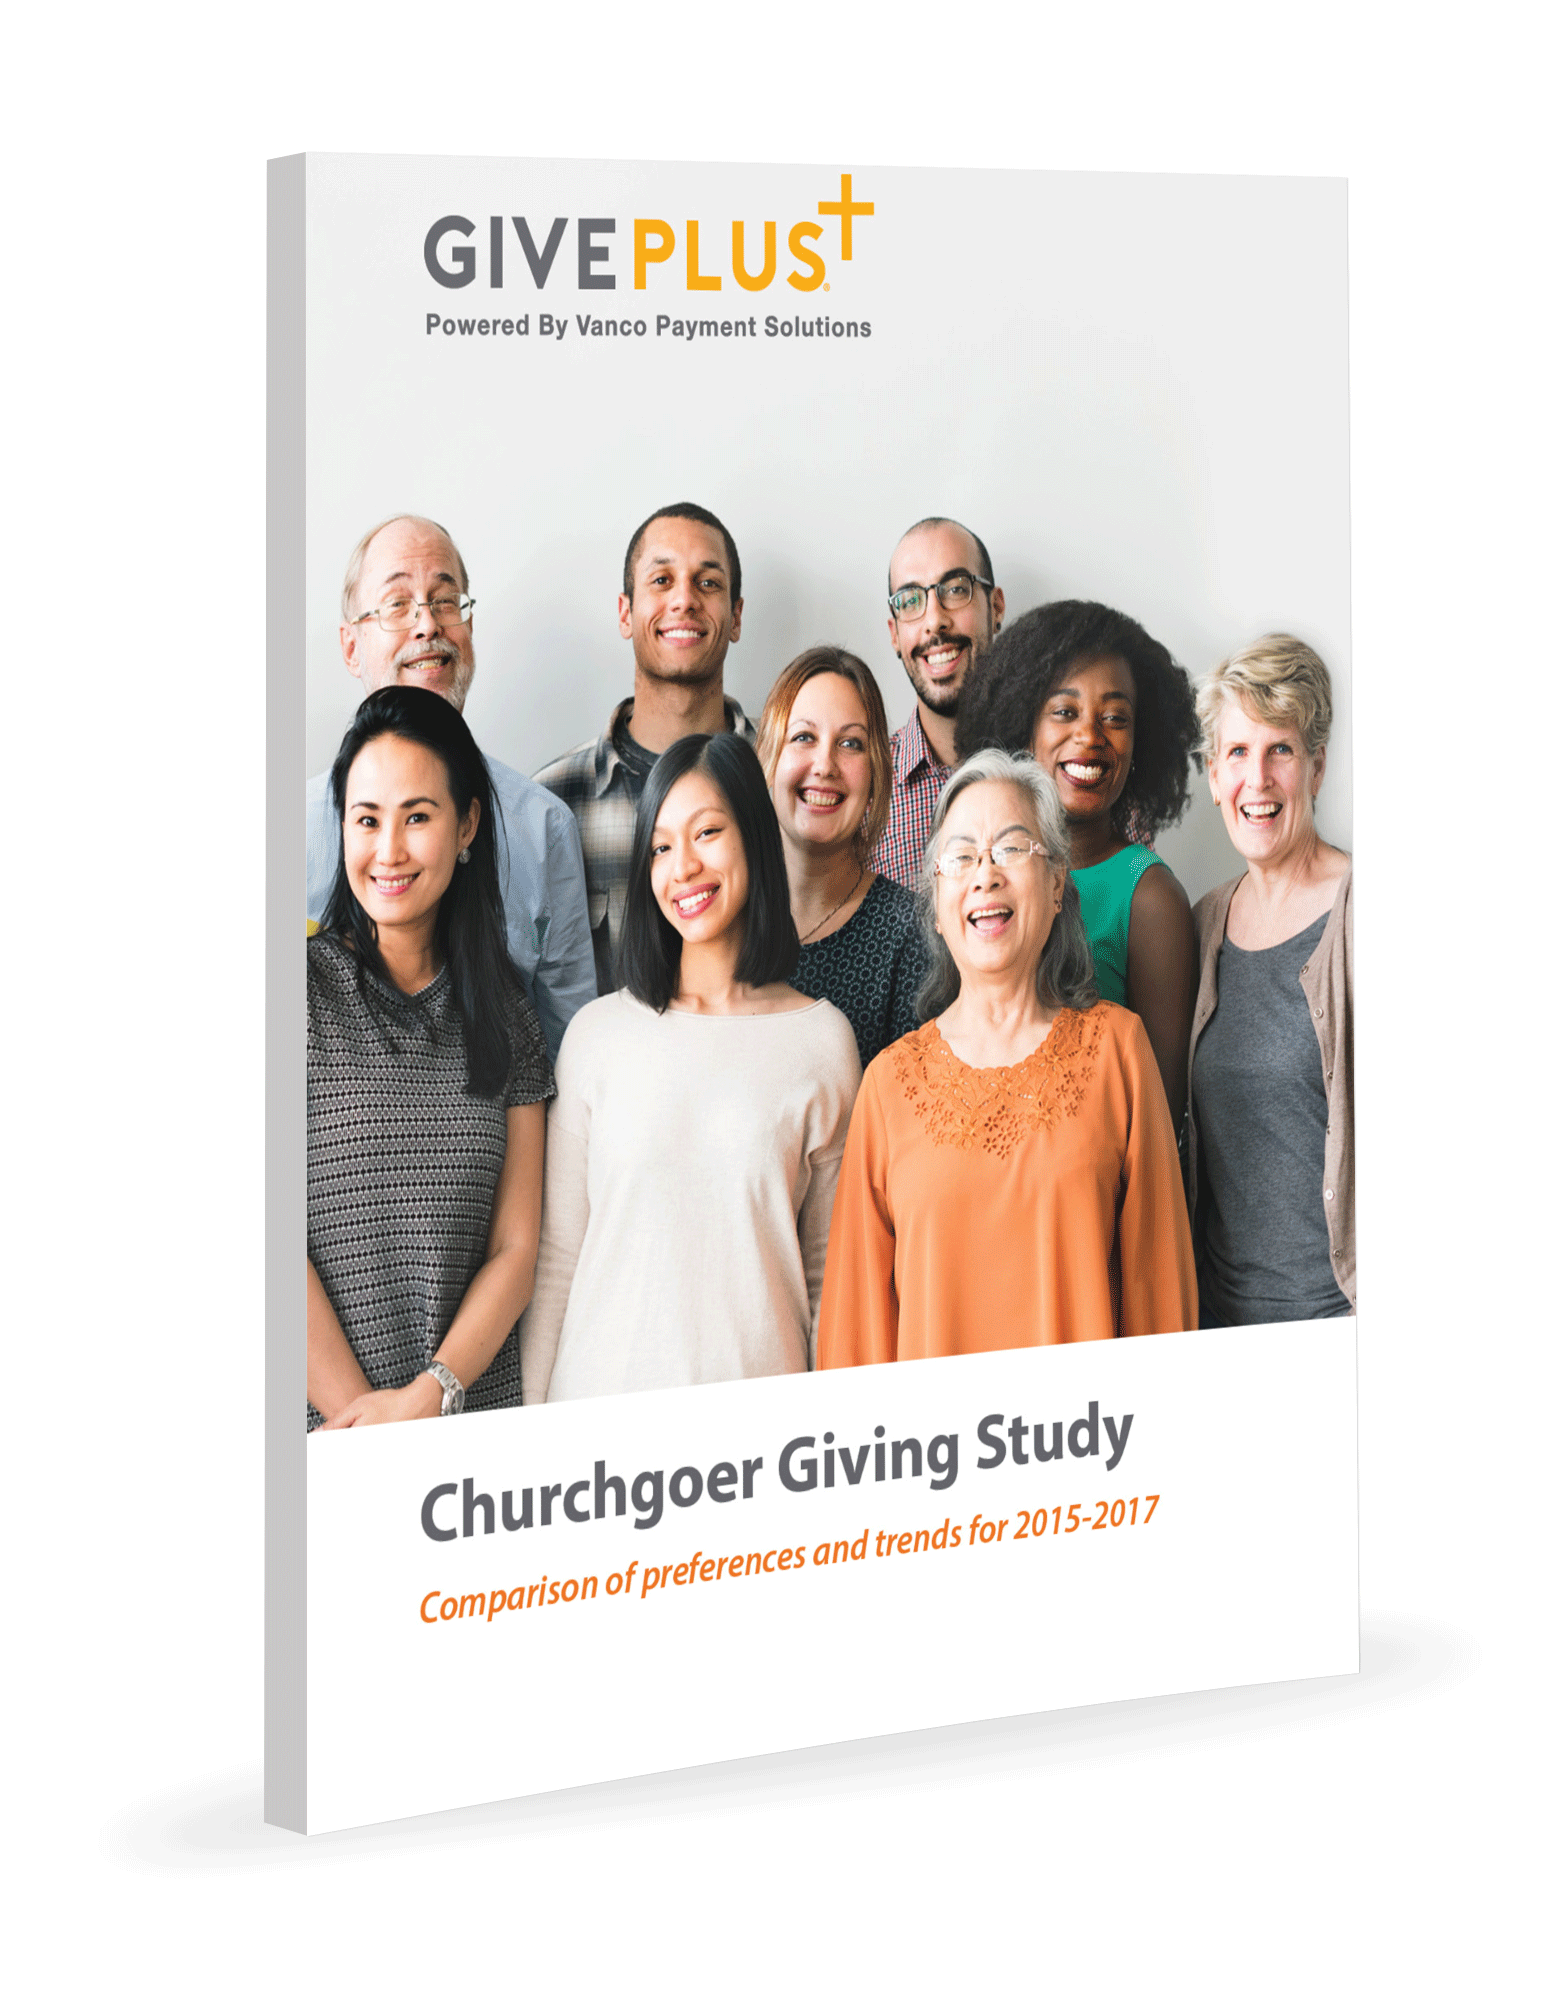 Churchgoer Giving Study Findings Report 2015-2017